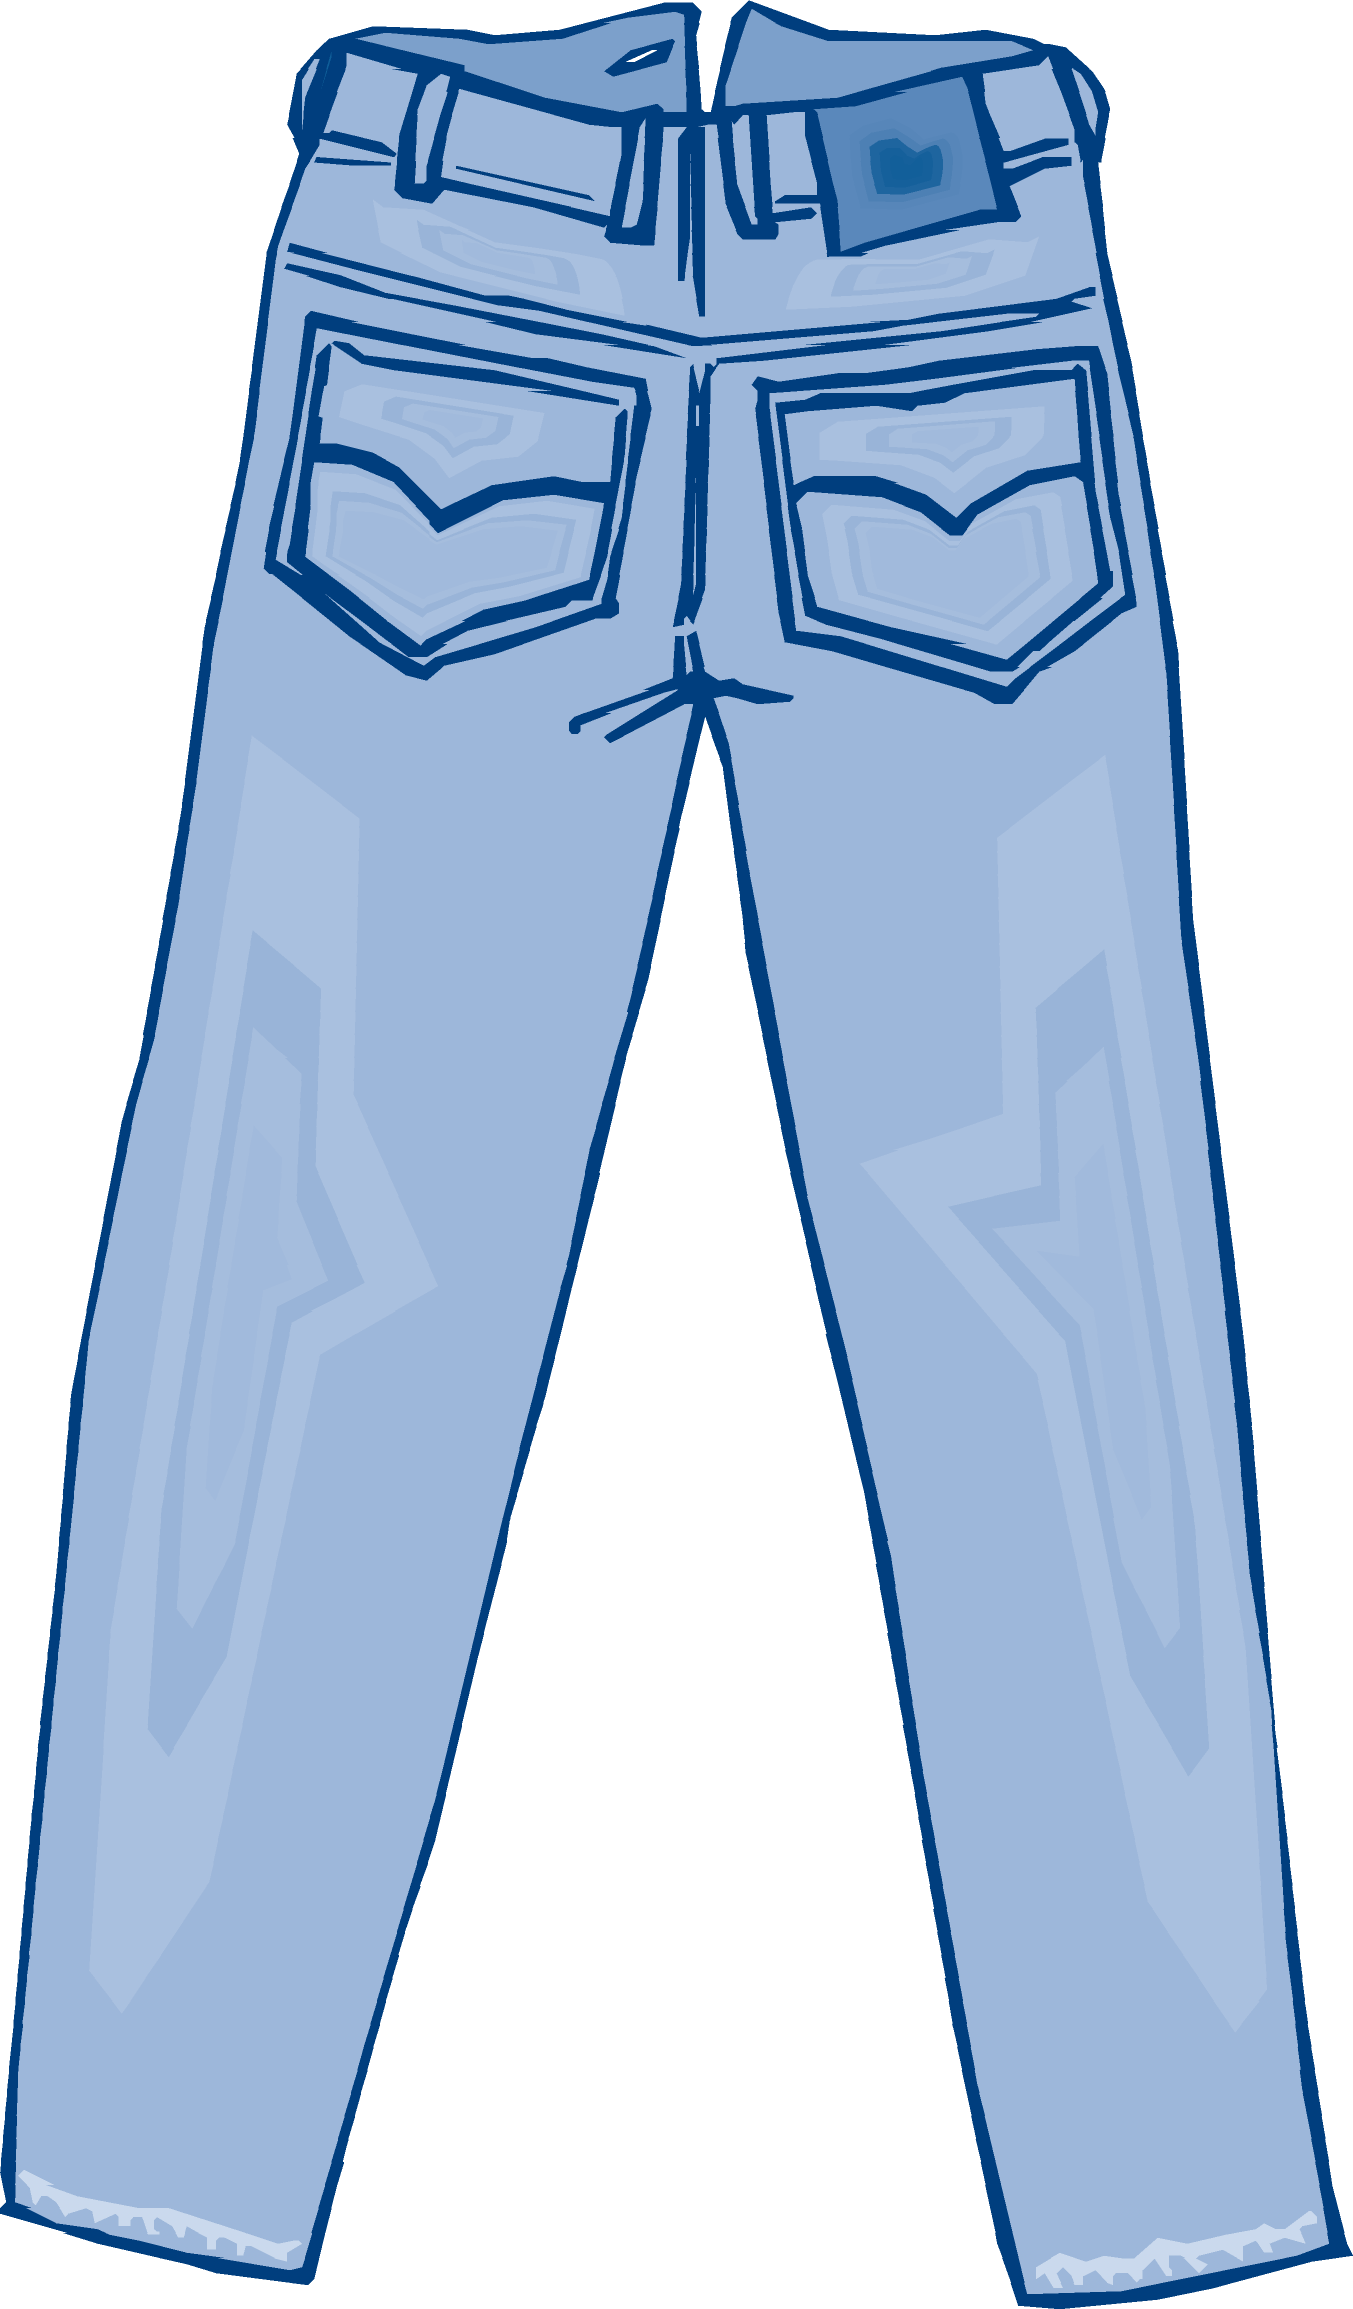 50s jeans men clipart clipart images gallery for free.